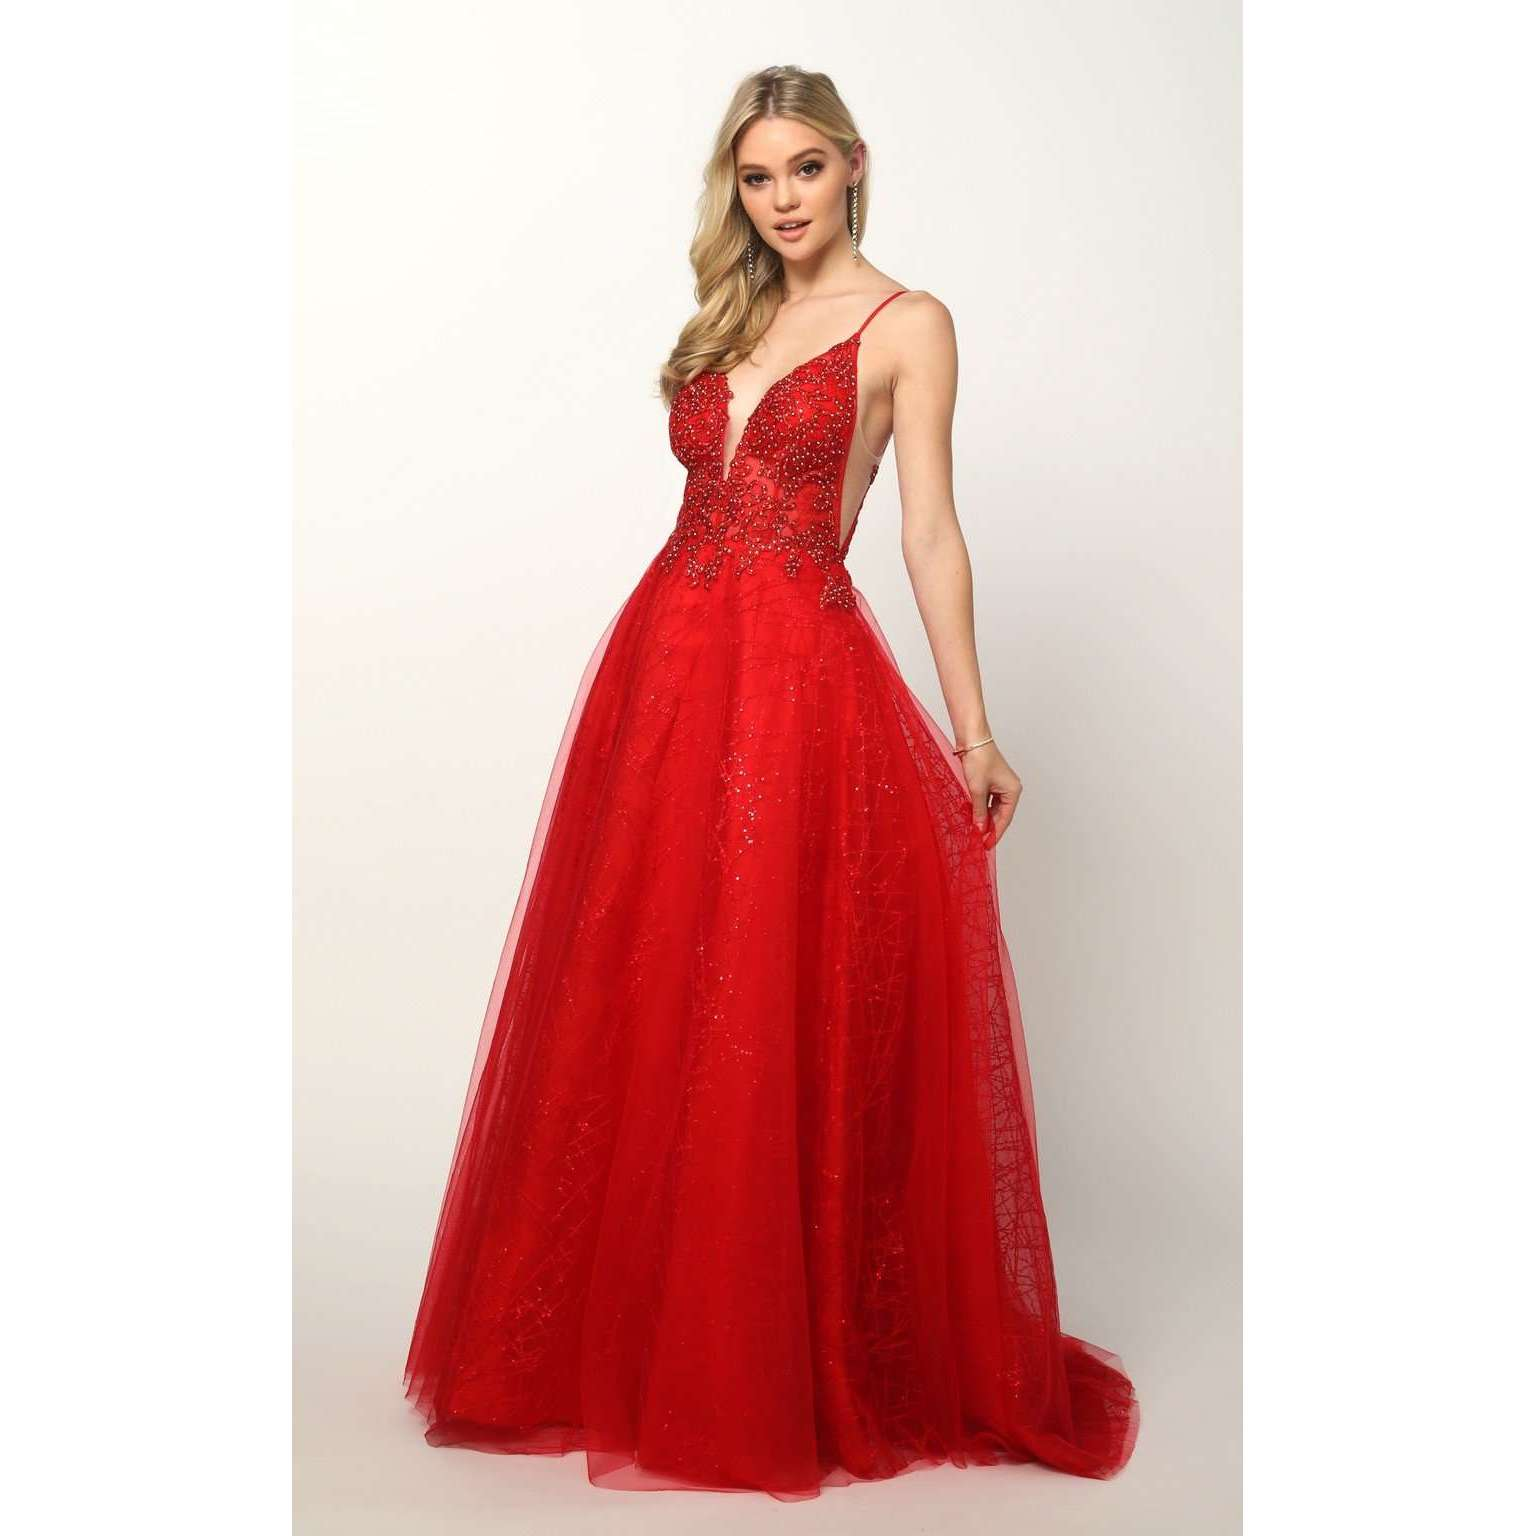 Sheer Embroidered Bodice with Sequin Train Tulle Ballgown Skirt 689 - Julietdresses